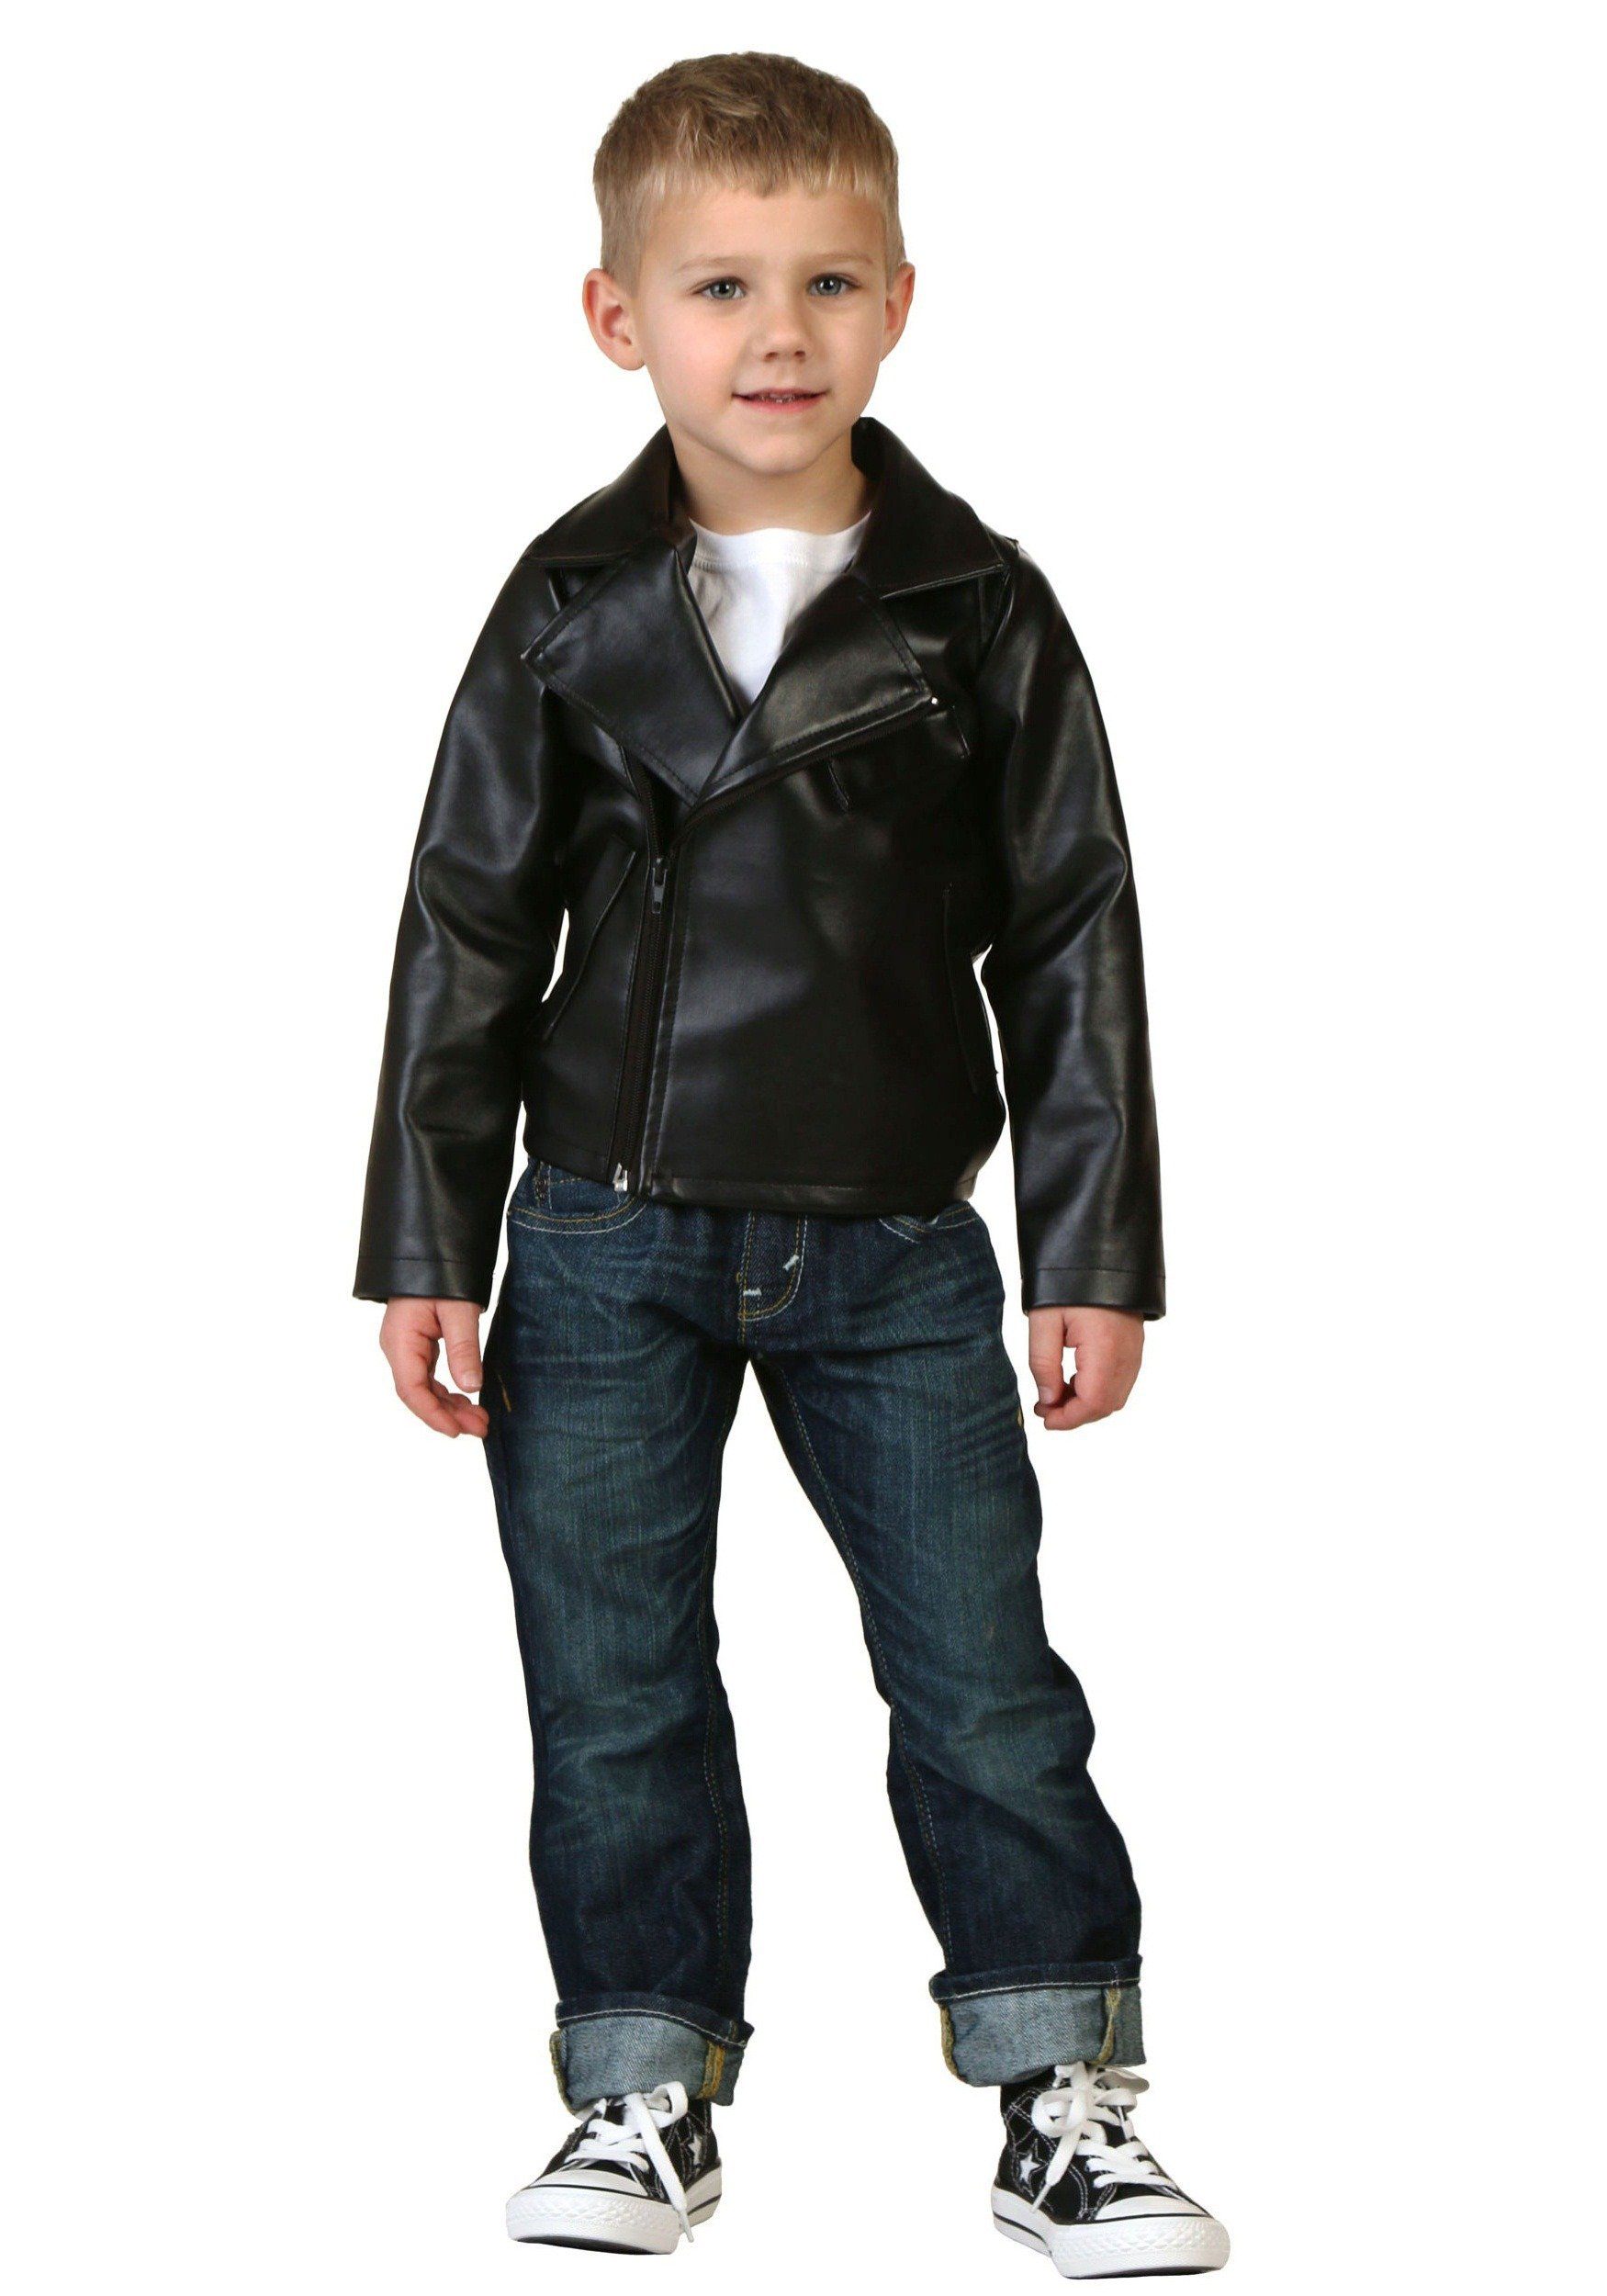 Toddler Boys Grease T-Birds Black Movie Jacket 2T